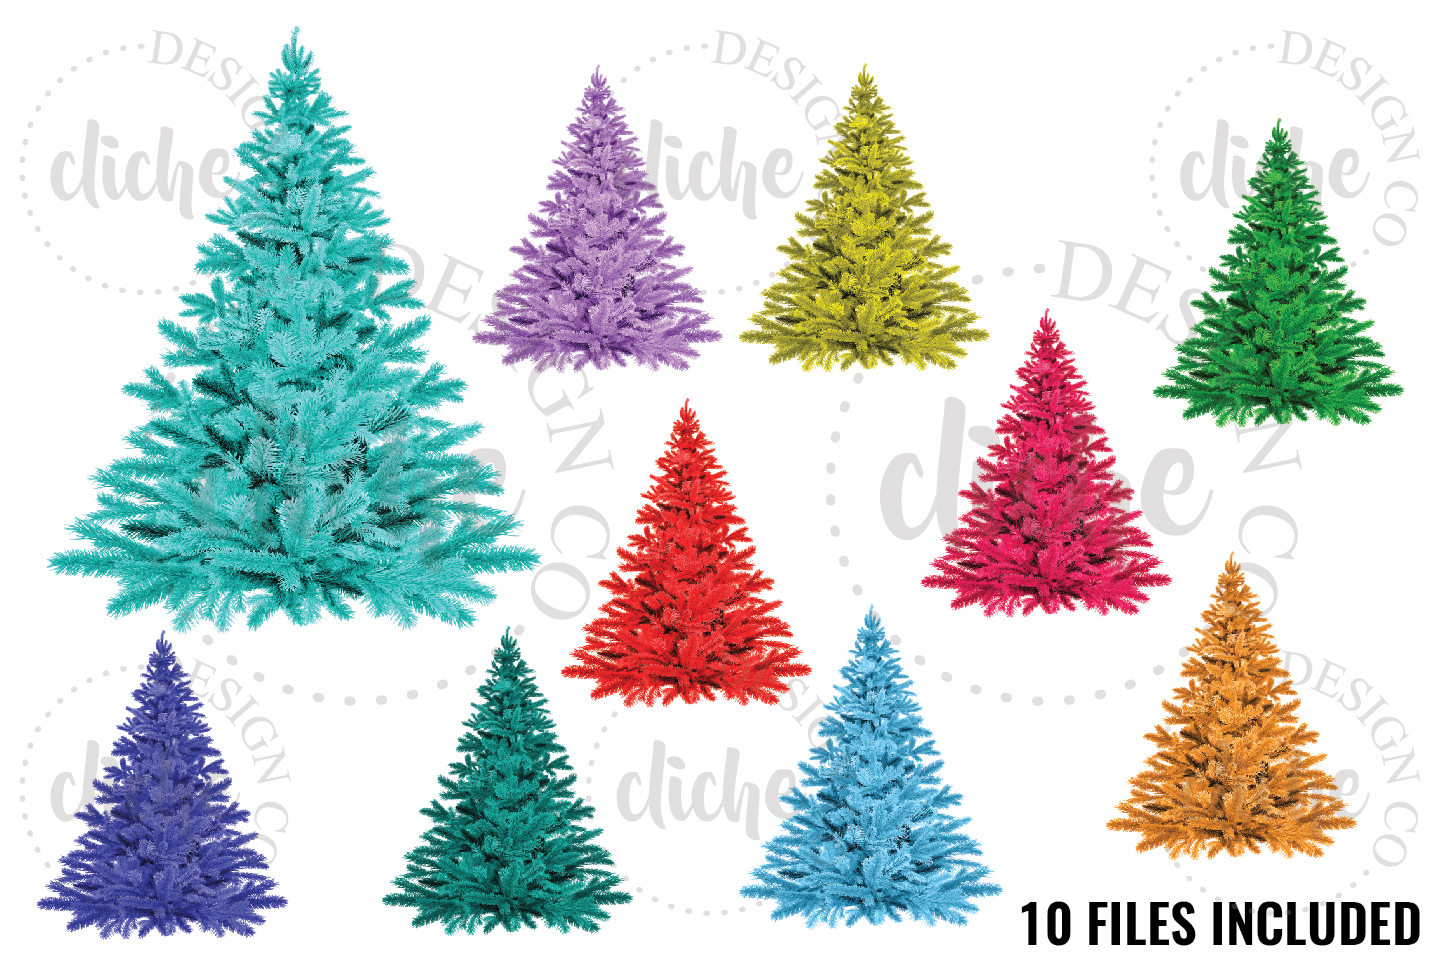 Colorful Christmas Tree Sublimation Design Elements example image 1